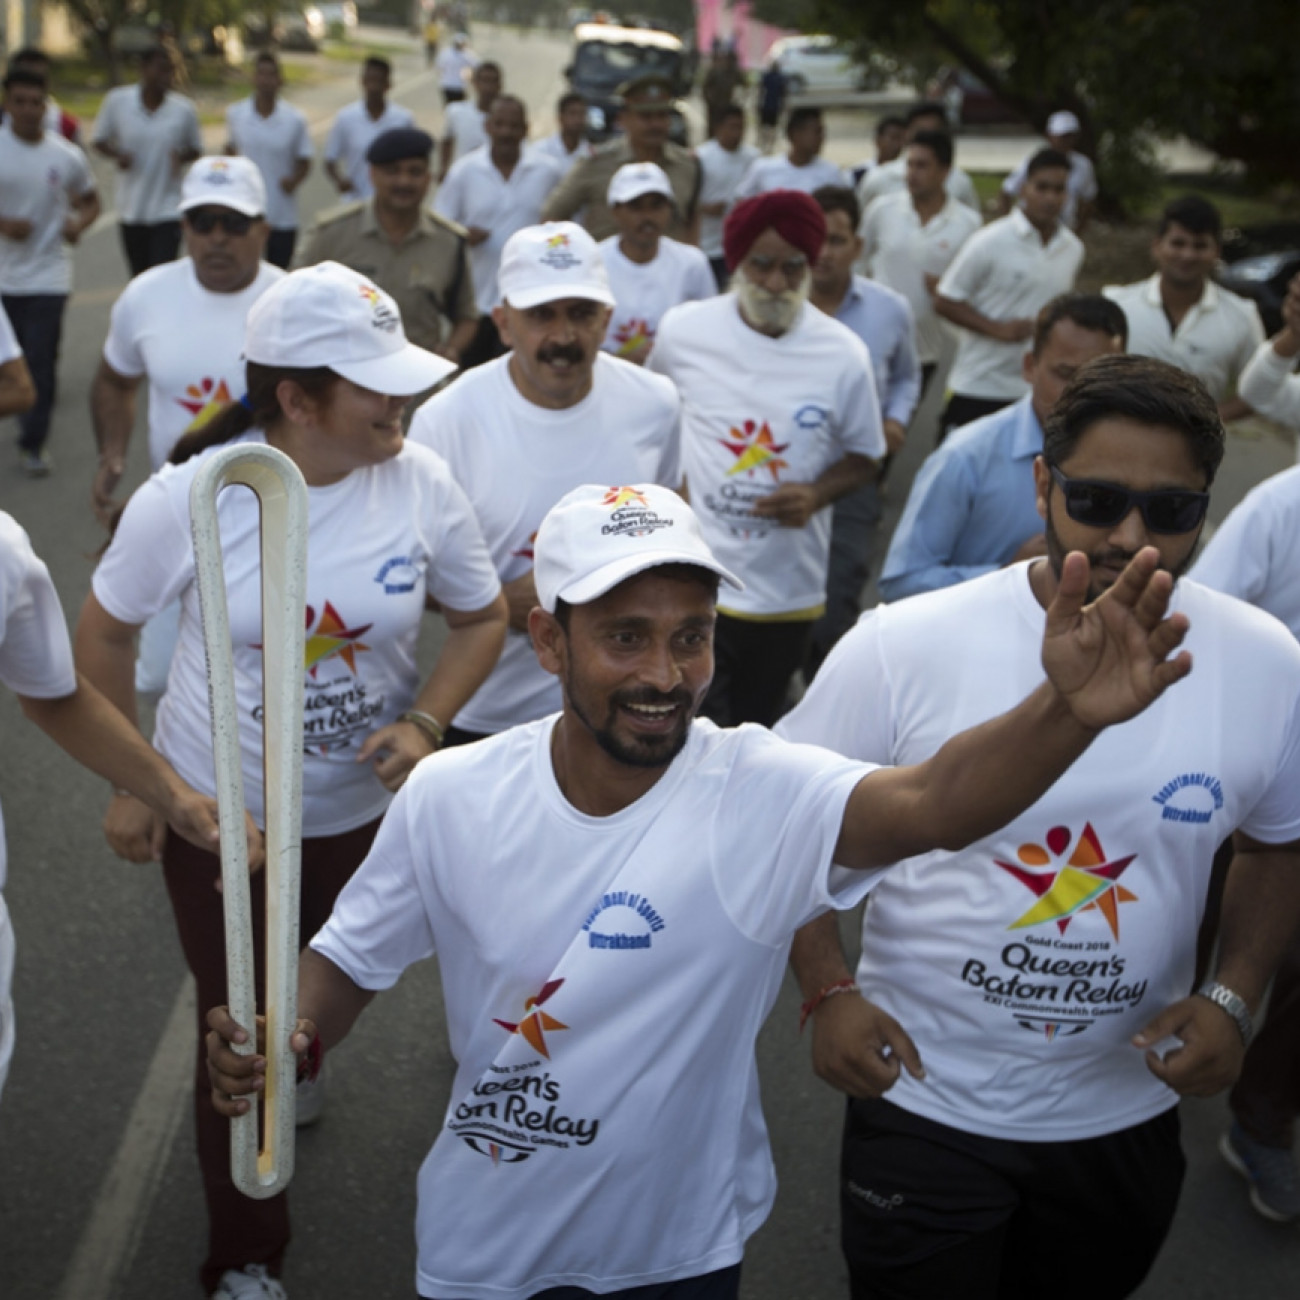 Local athletes with the Baton taking part in the Relay in Dehradun